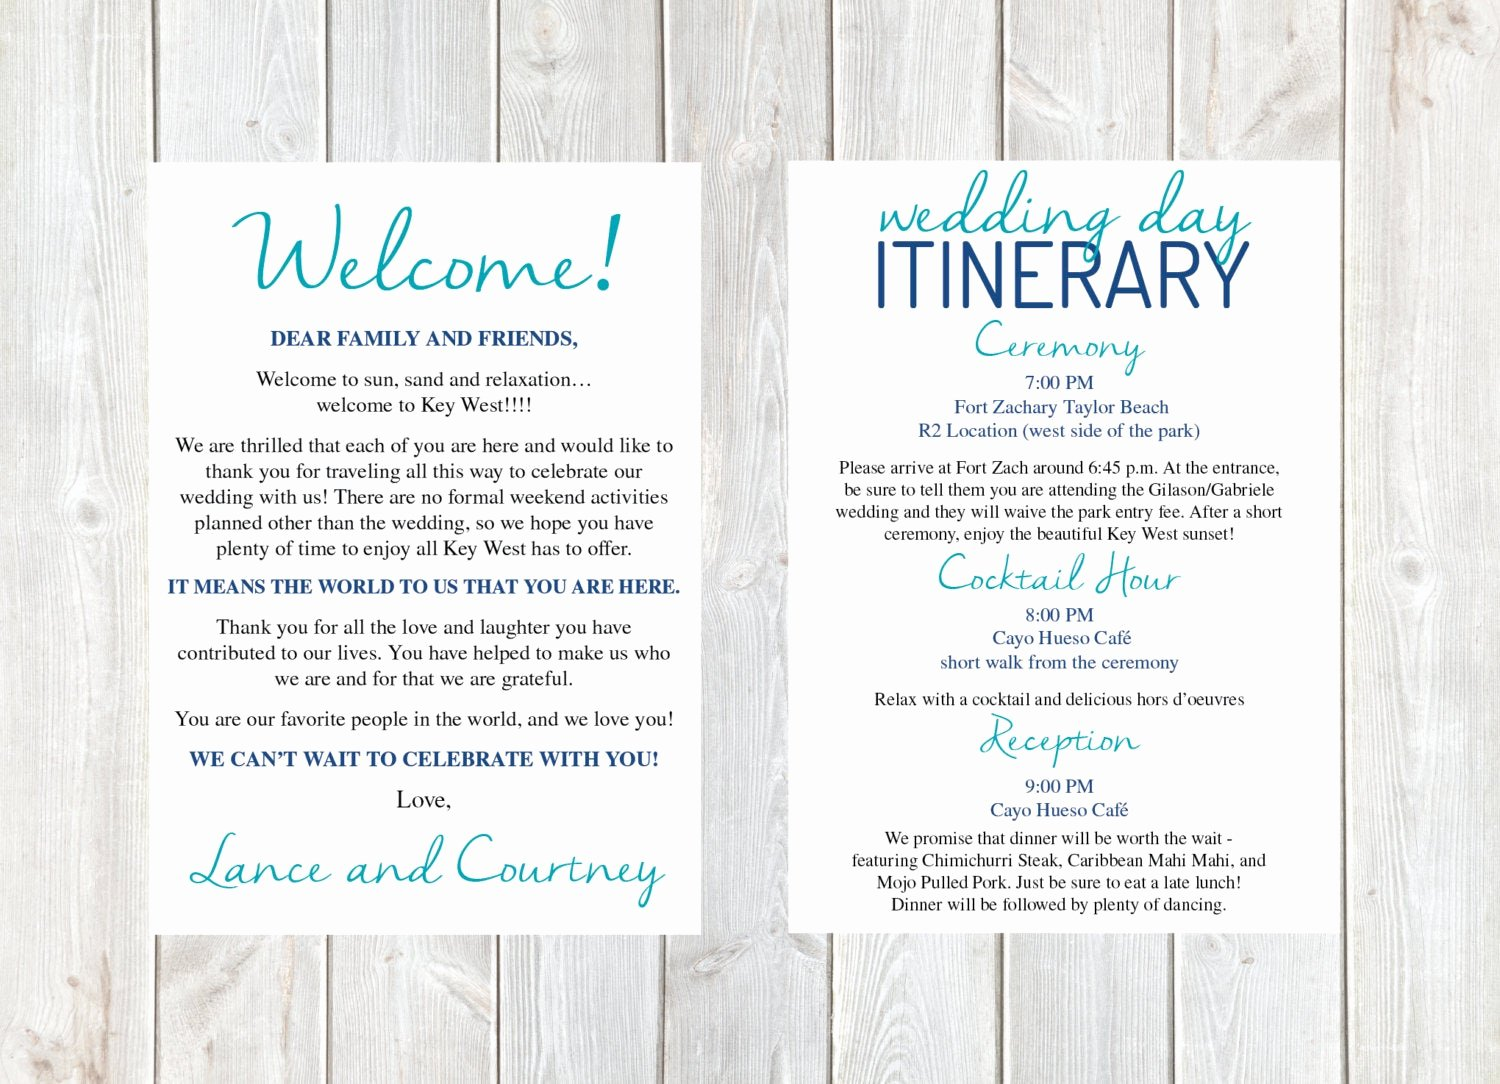 Wedding Welcome Letter Template Fresh Wel E Letter Wedding Wel E Letter Wedding Itinerary